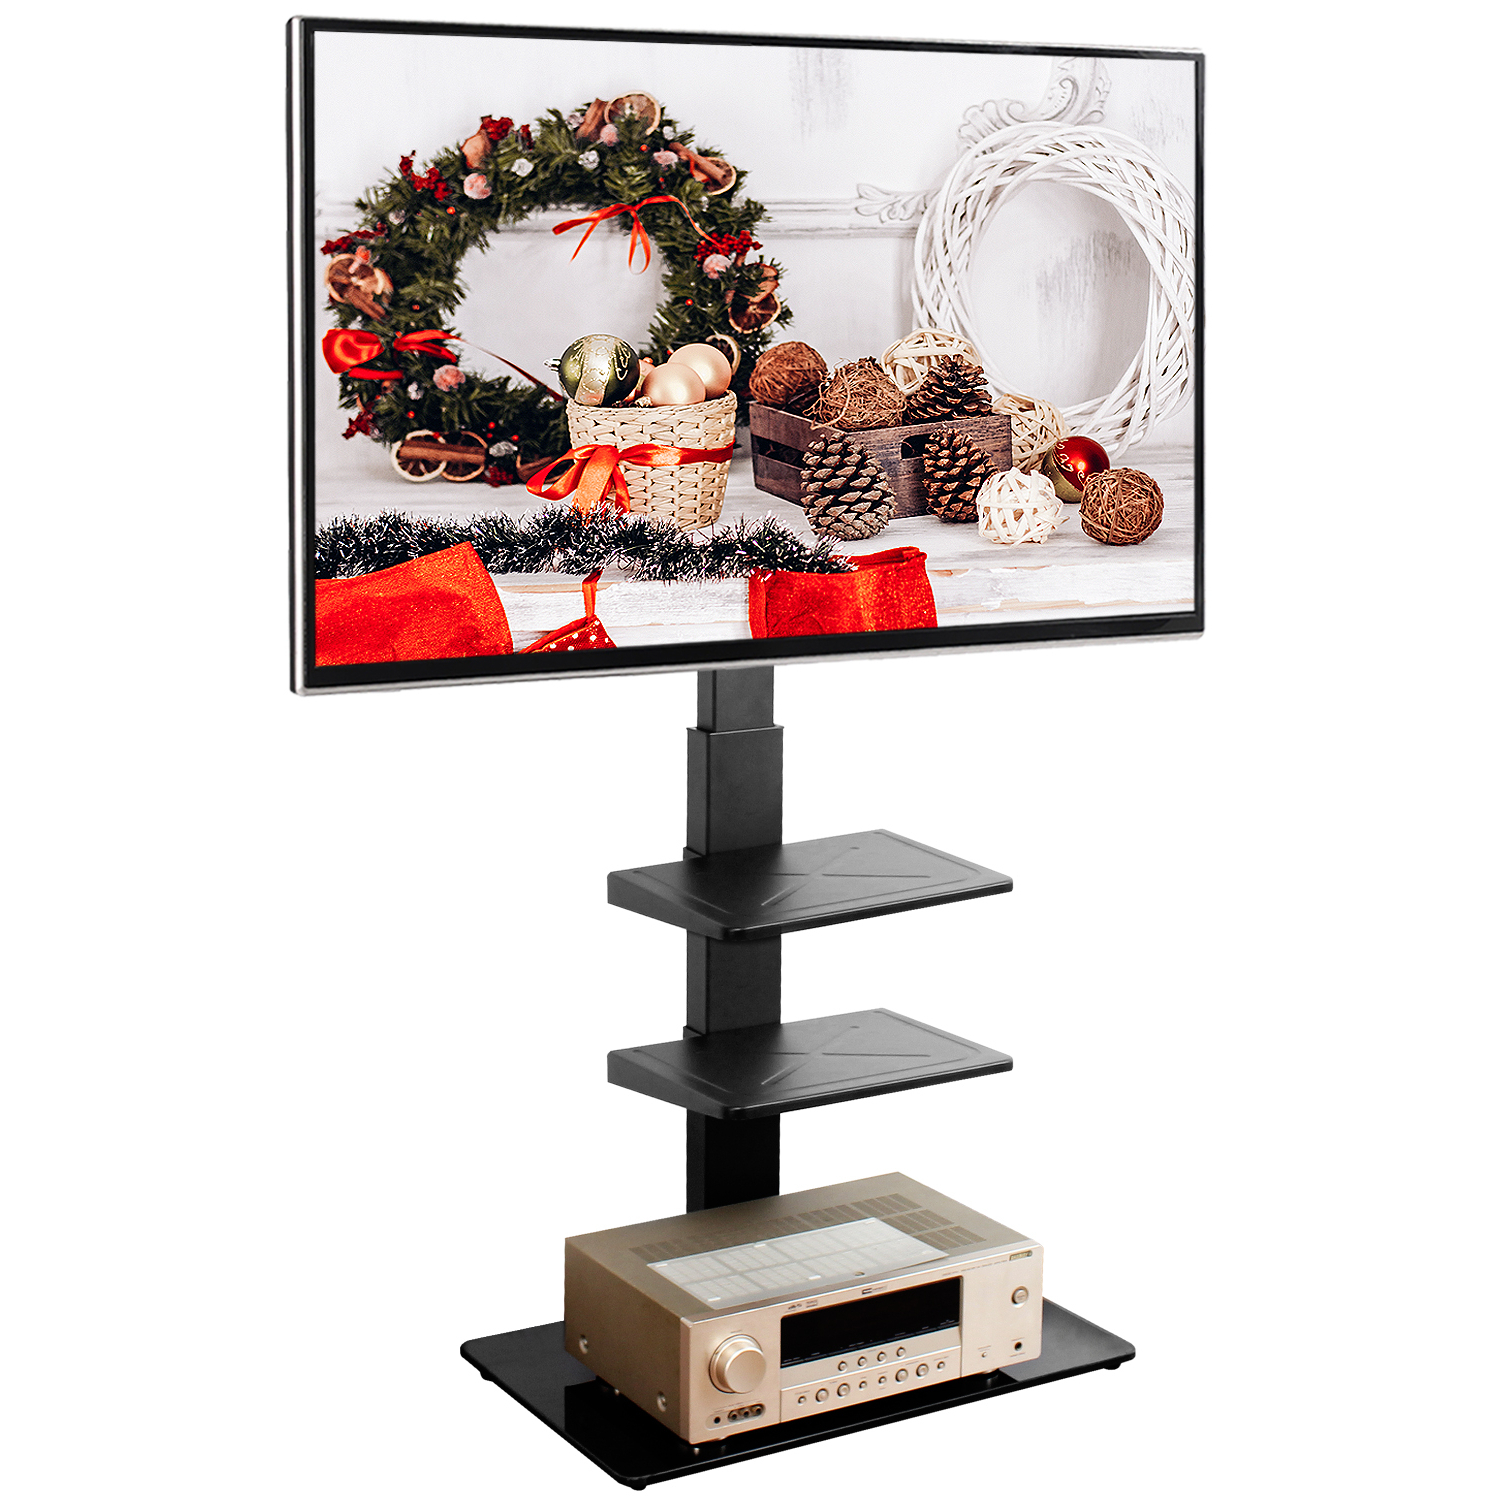 5rcom Black Floor Tv Stand With Swivel Mount Bracket For Within Modern Black Tv Stands On Wheels With Metal Cart (View 9 of 20)